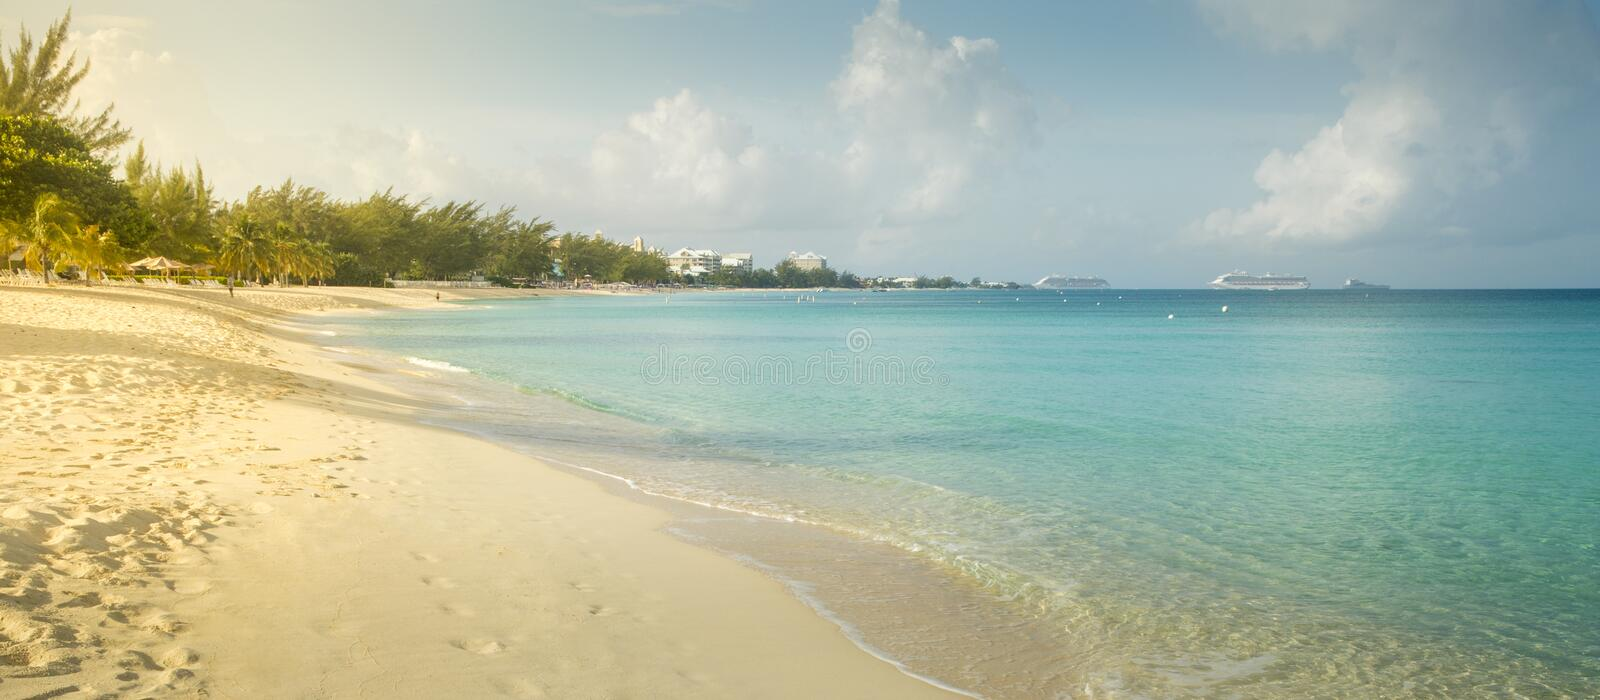 Seven Mile Beach on Grand Cayman island royalty free stock image